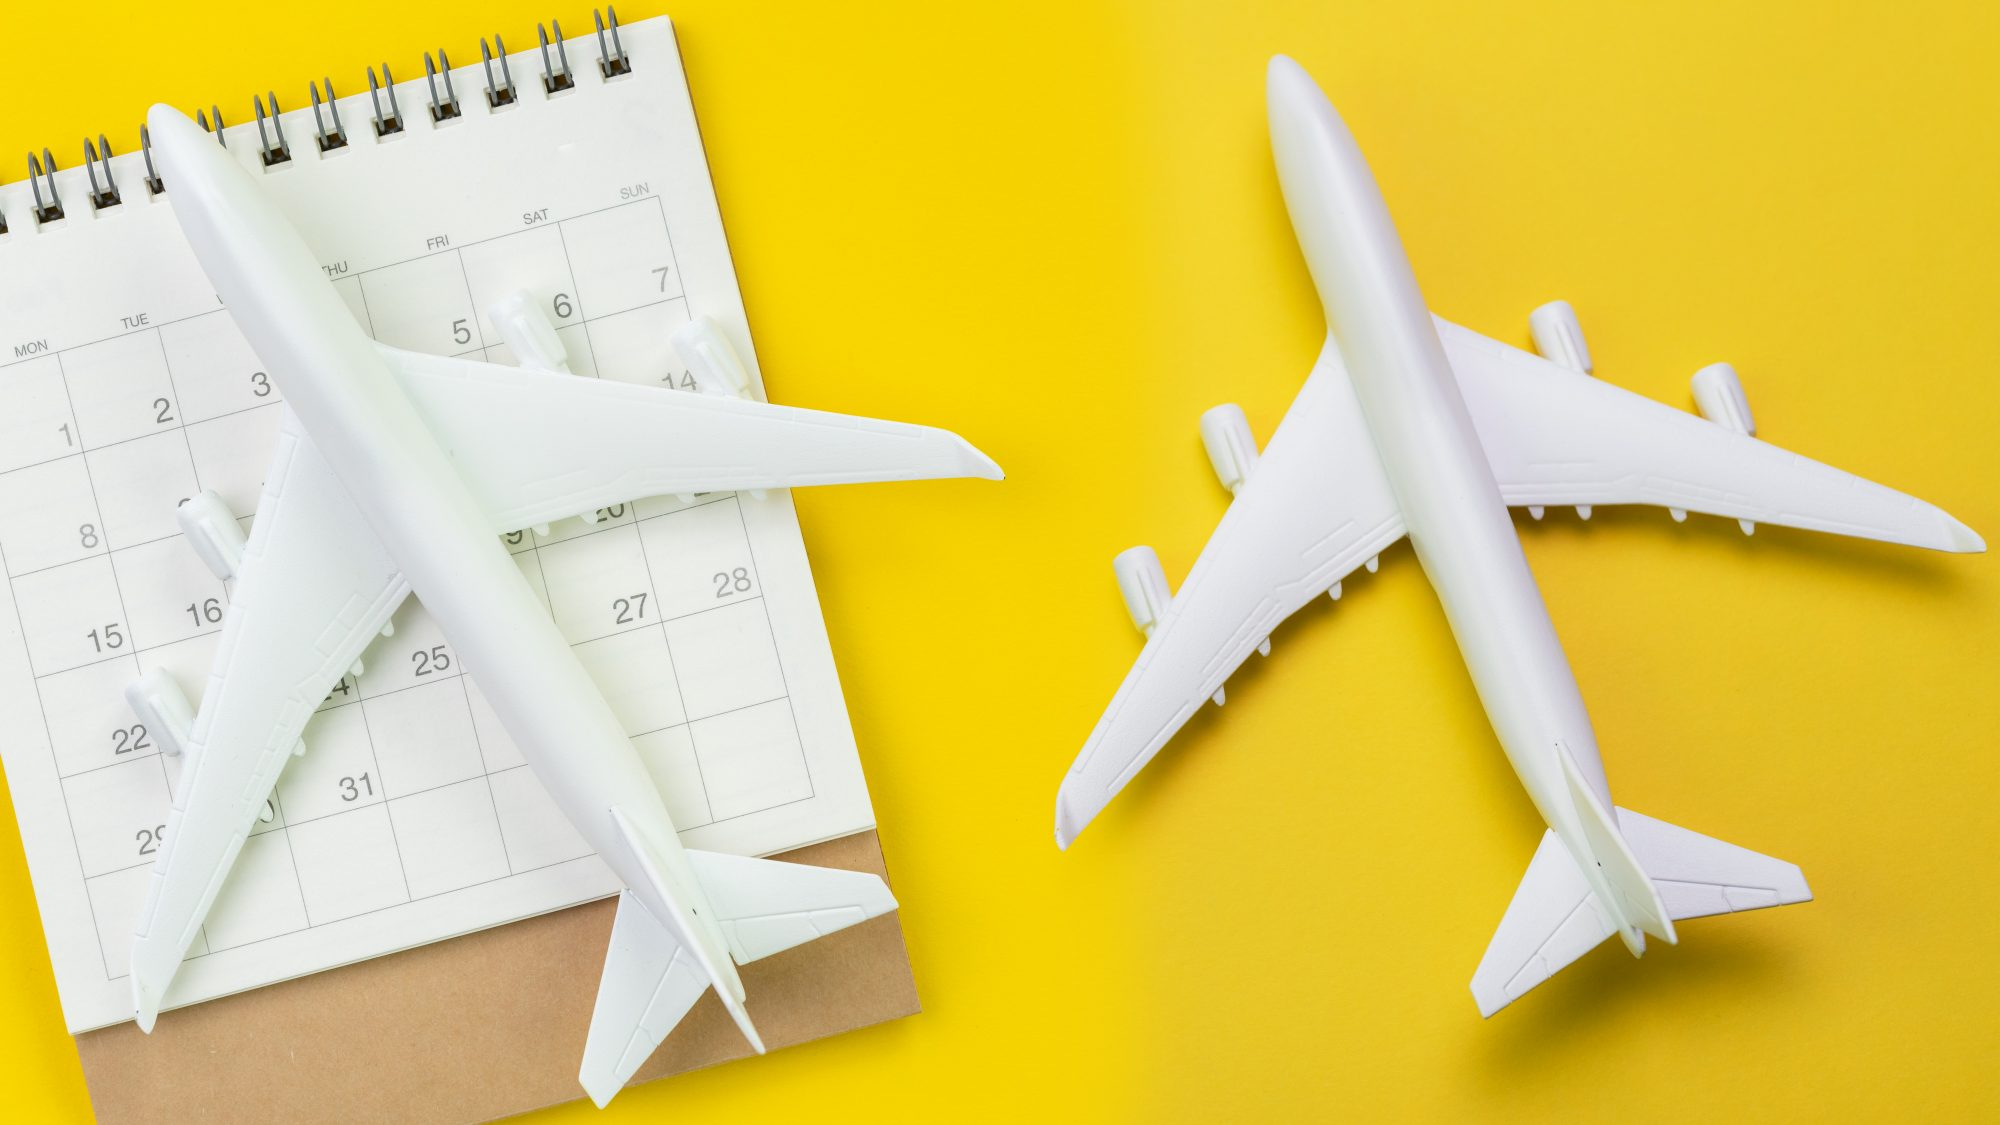 Best time to buy airline tickets - best time, time of year, and day to buy flights: plastic airplanes on calendar